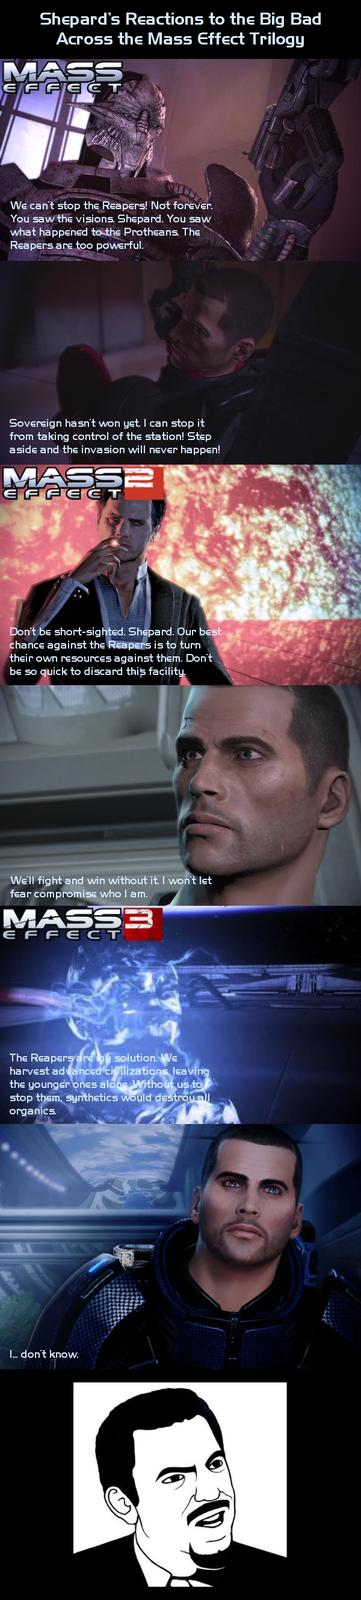 Shepard's Reactions at the End of Each Mass Effect Game